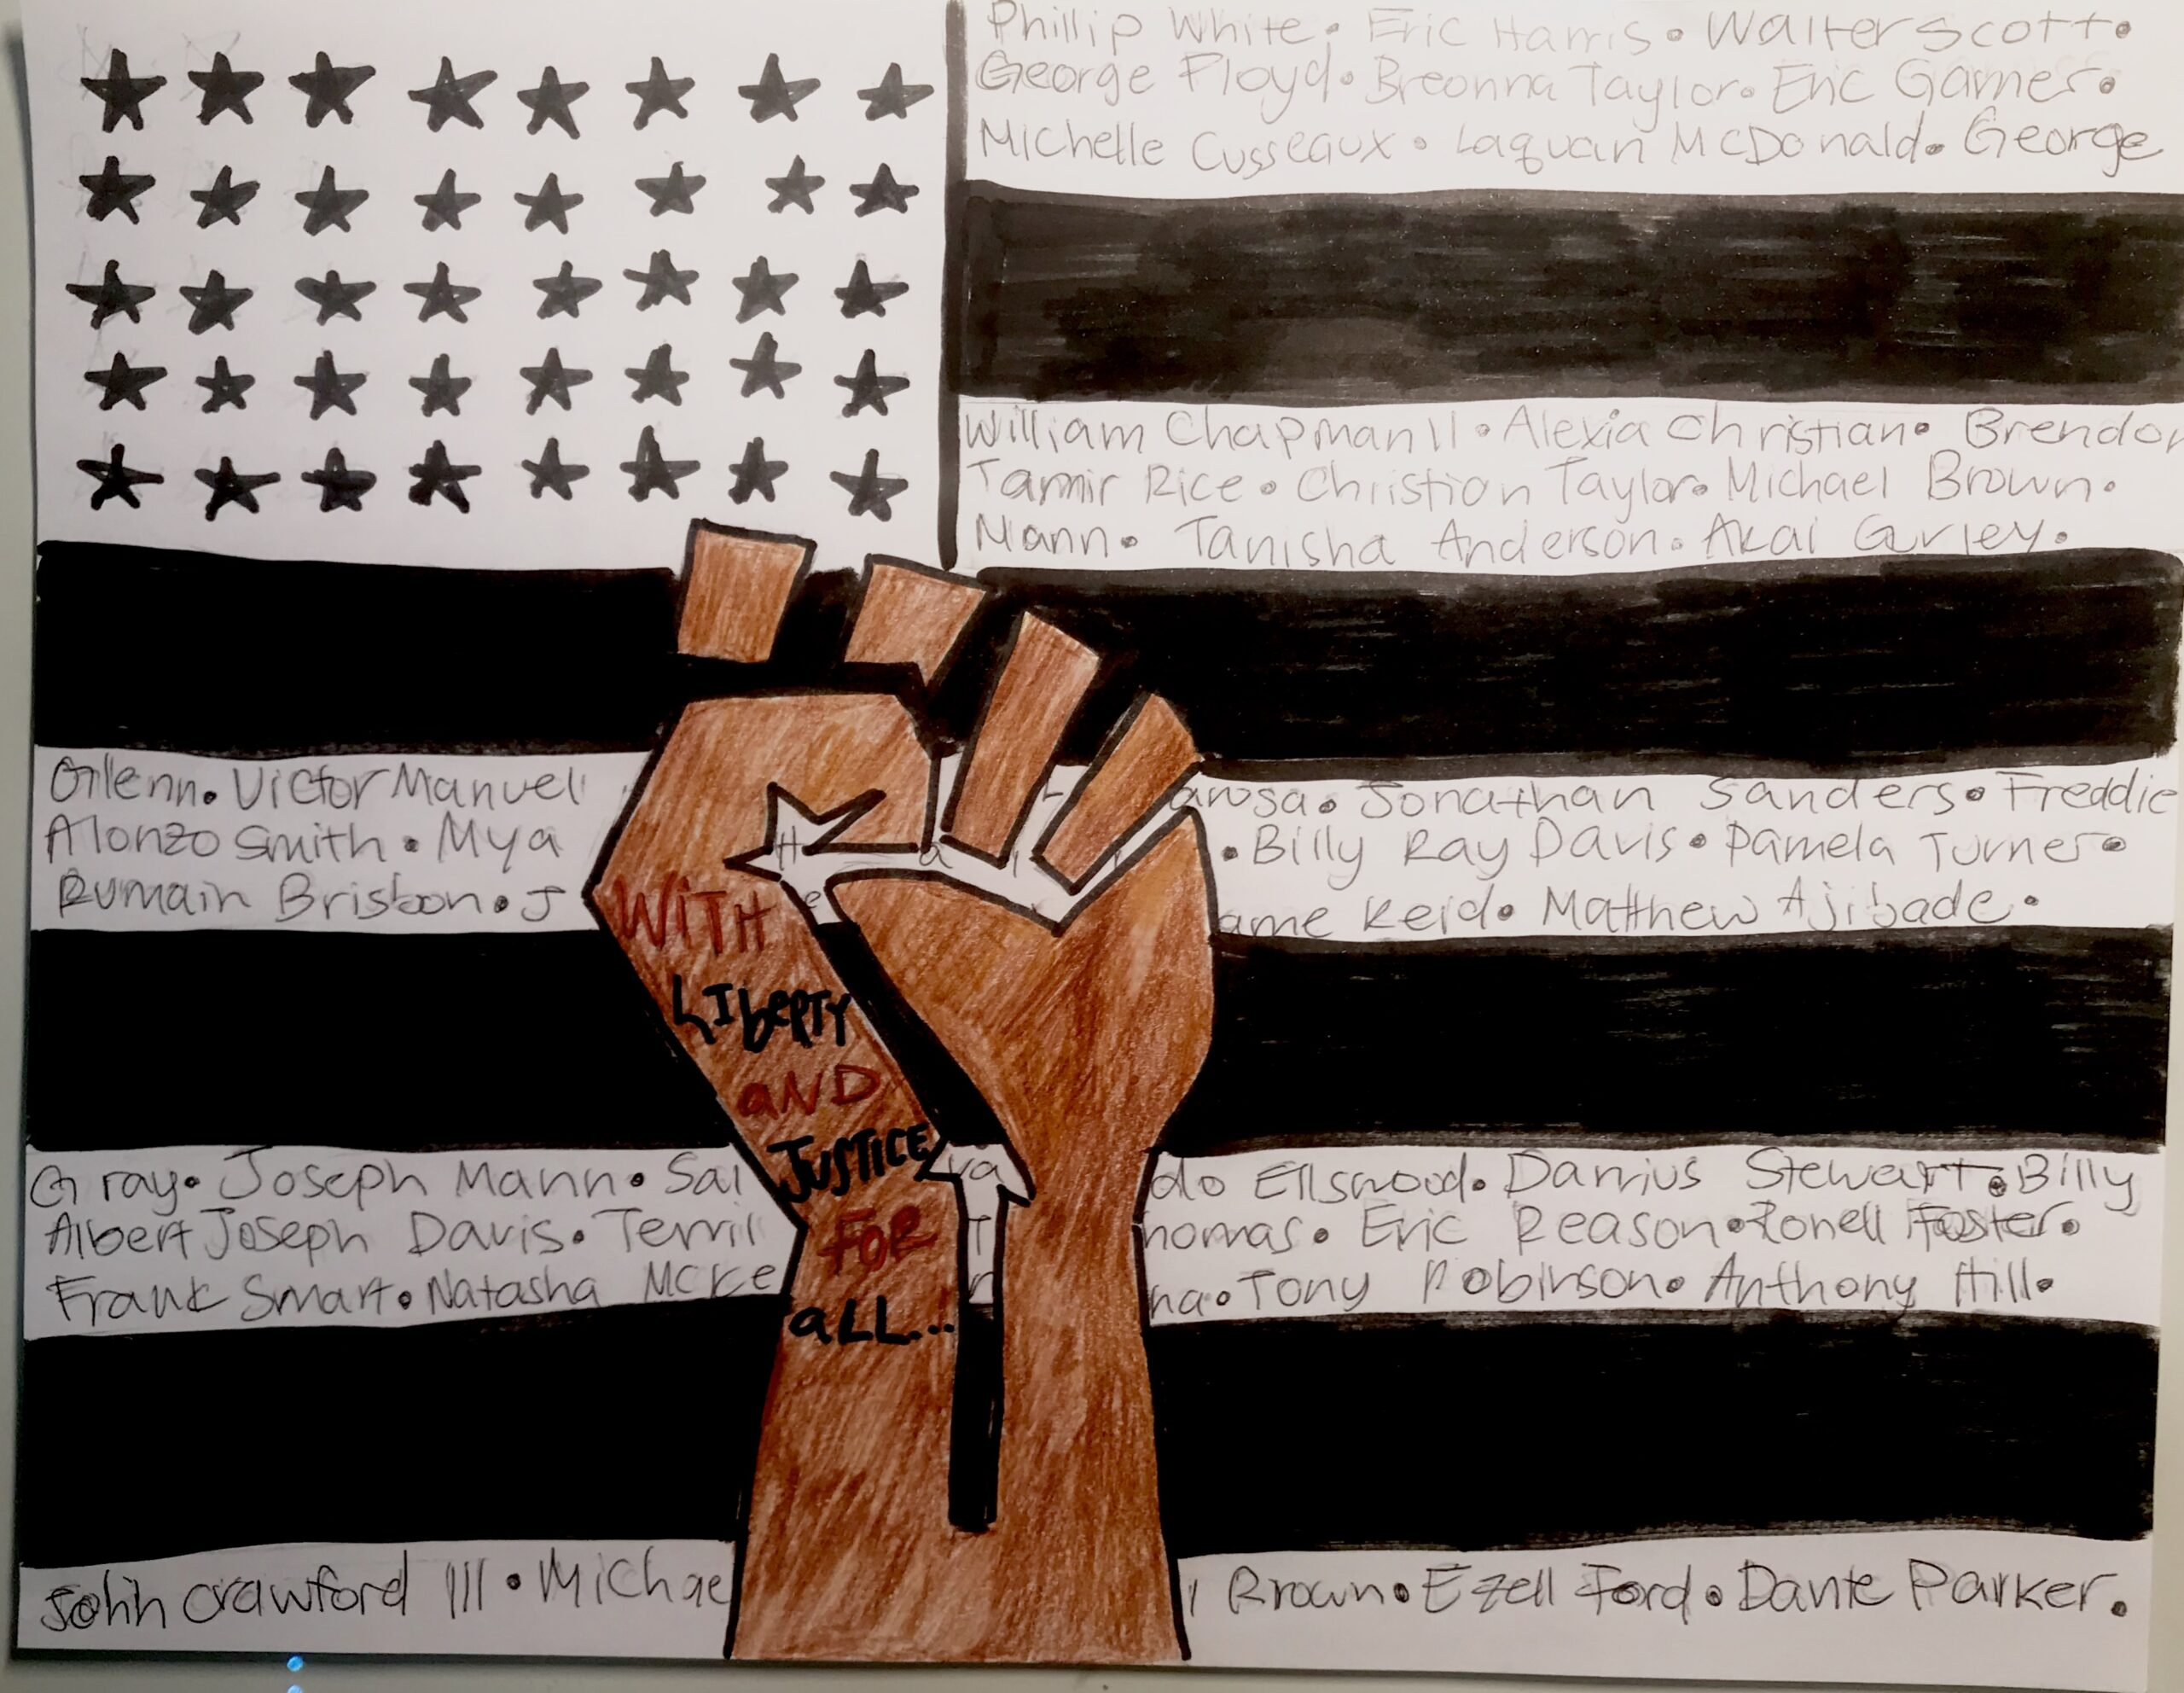 """Our country's values are based on justice and freedom for all, but clearly, our nation is not following those principles. Hence, the """"With liberty and justice for all"""" from the pledge of allegiance written on the fist. The names written on the stripes of the flag, are just a few of the victims of police brutality within the last few years. There were hundreds more, but I could only fit a few names."""